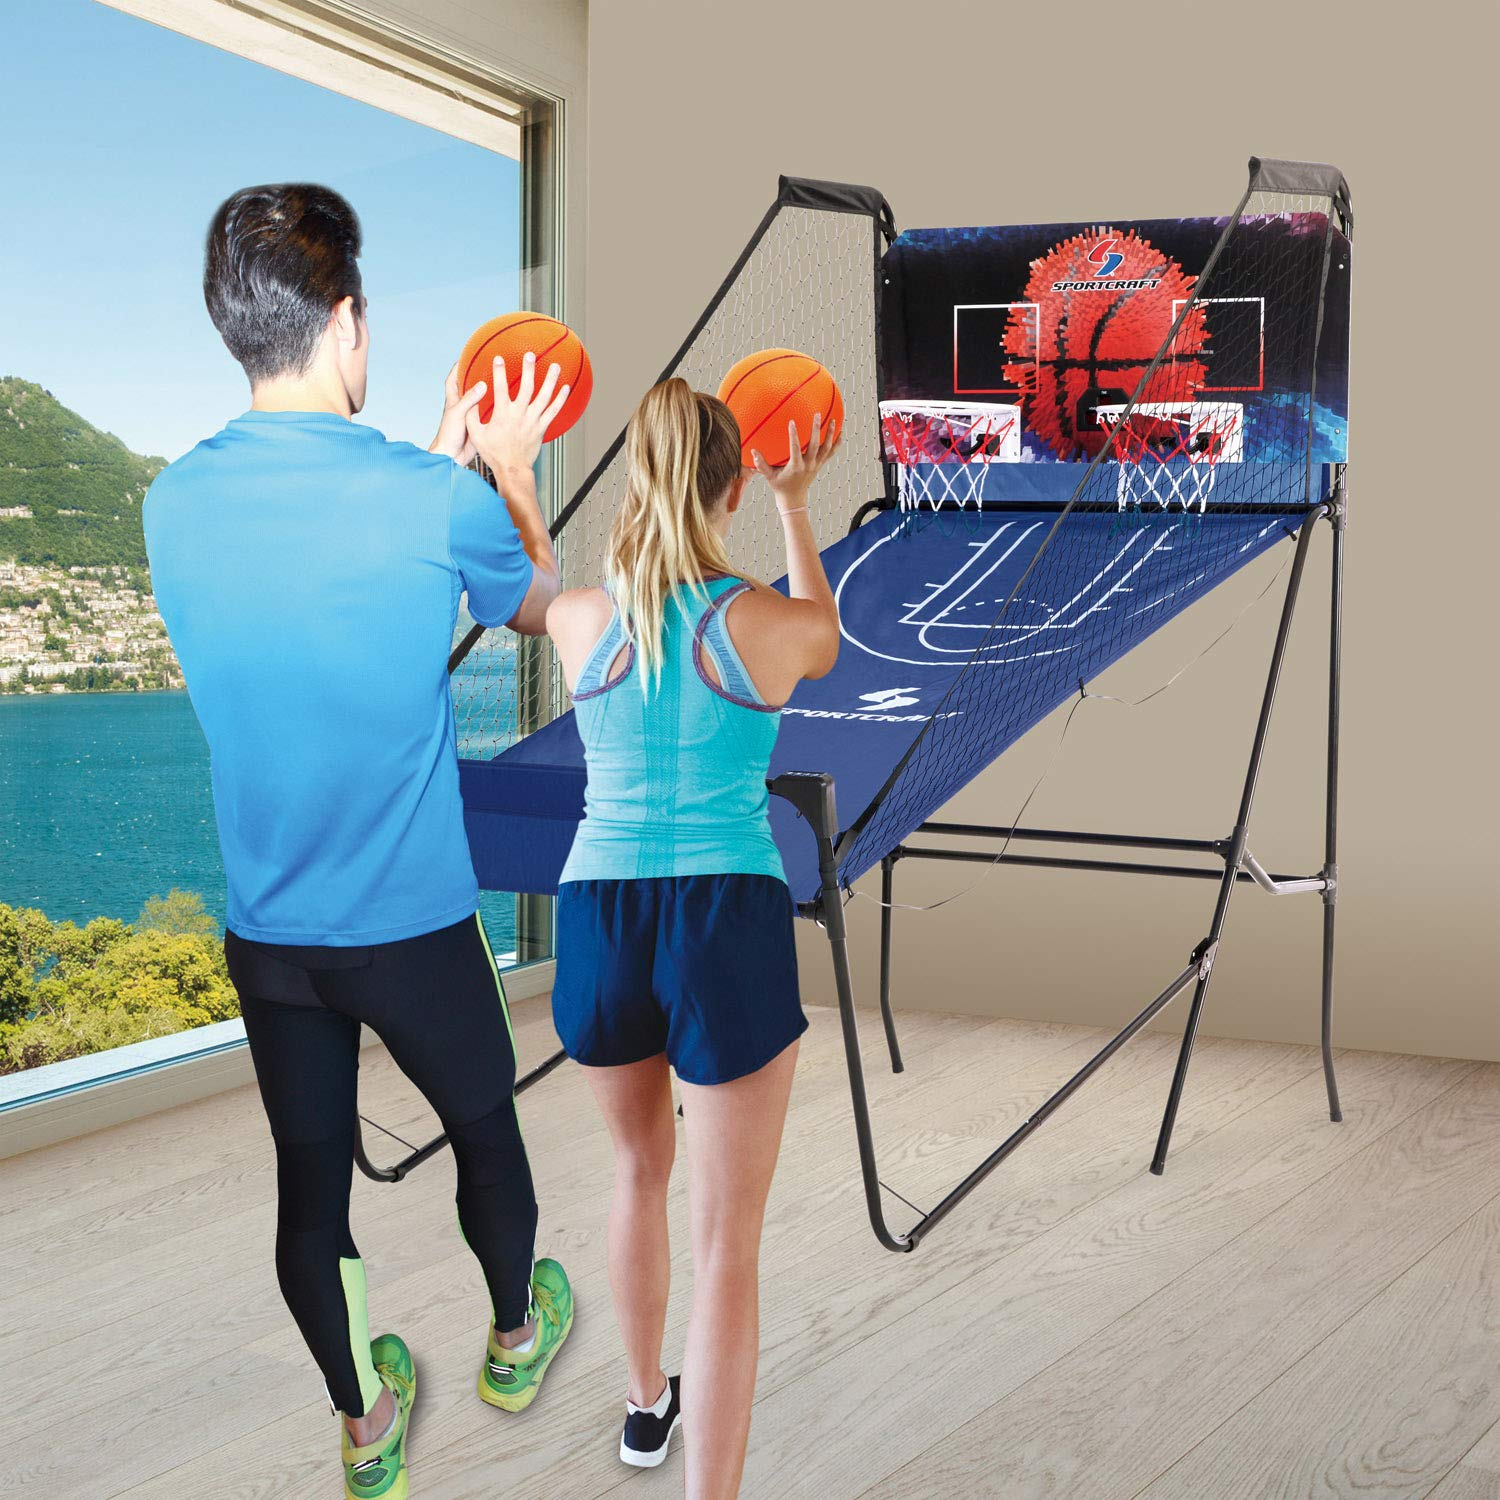 Sportcraft SIR00733 Quick Set-Up Basketball Arcade 8 Game Modes, 2-Players, Setup Less Than 10 Mins, No Tools Required, Heavy Duty 1'' Steel Tube by Sportcraft (Image #7)